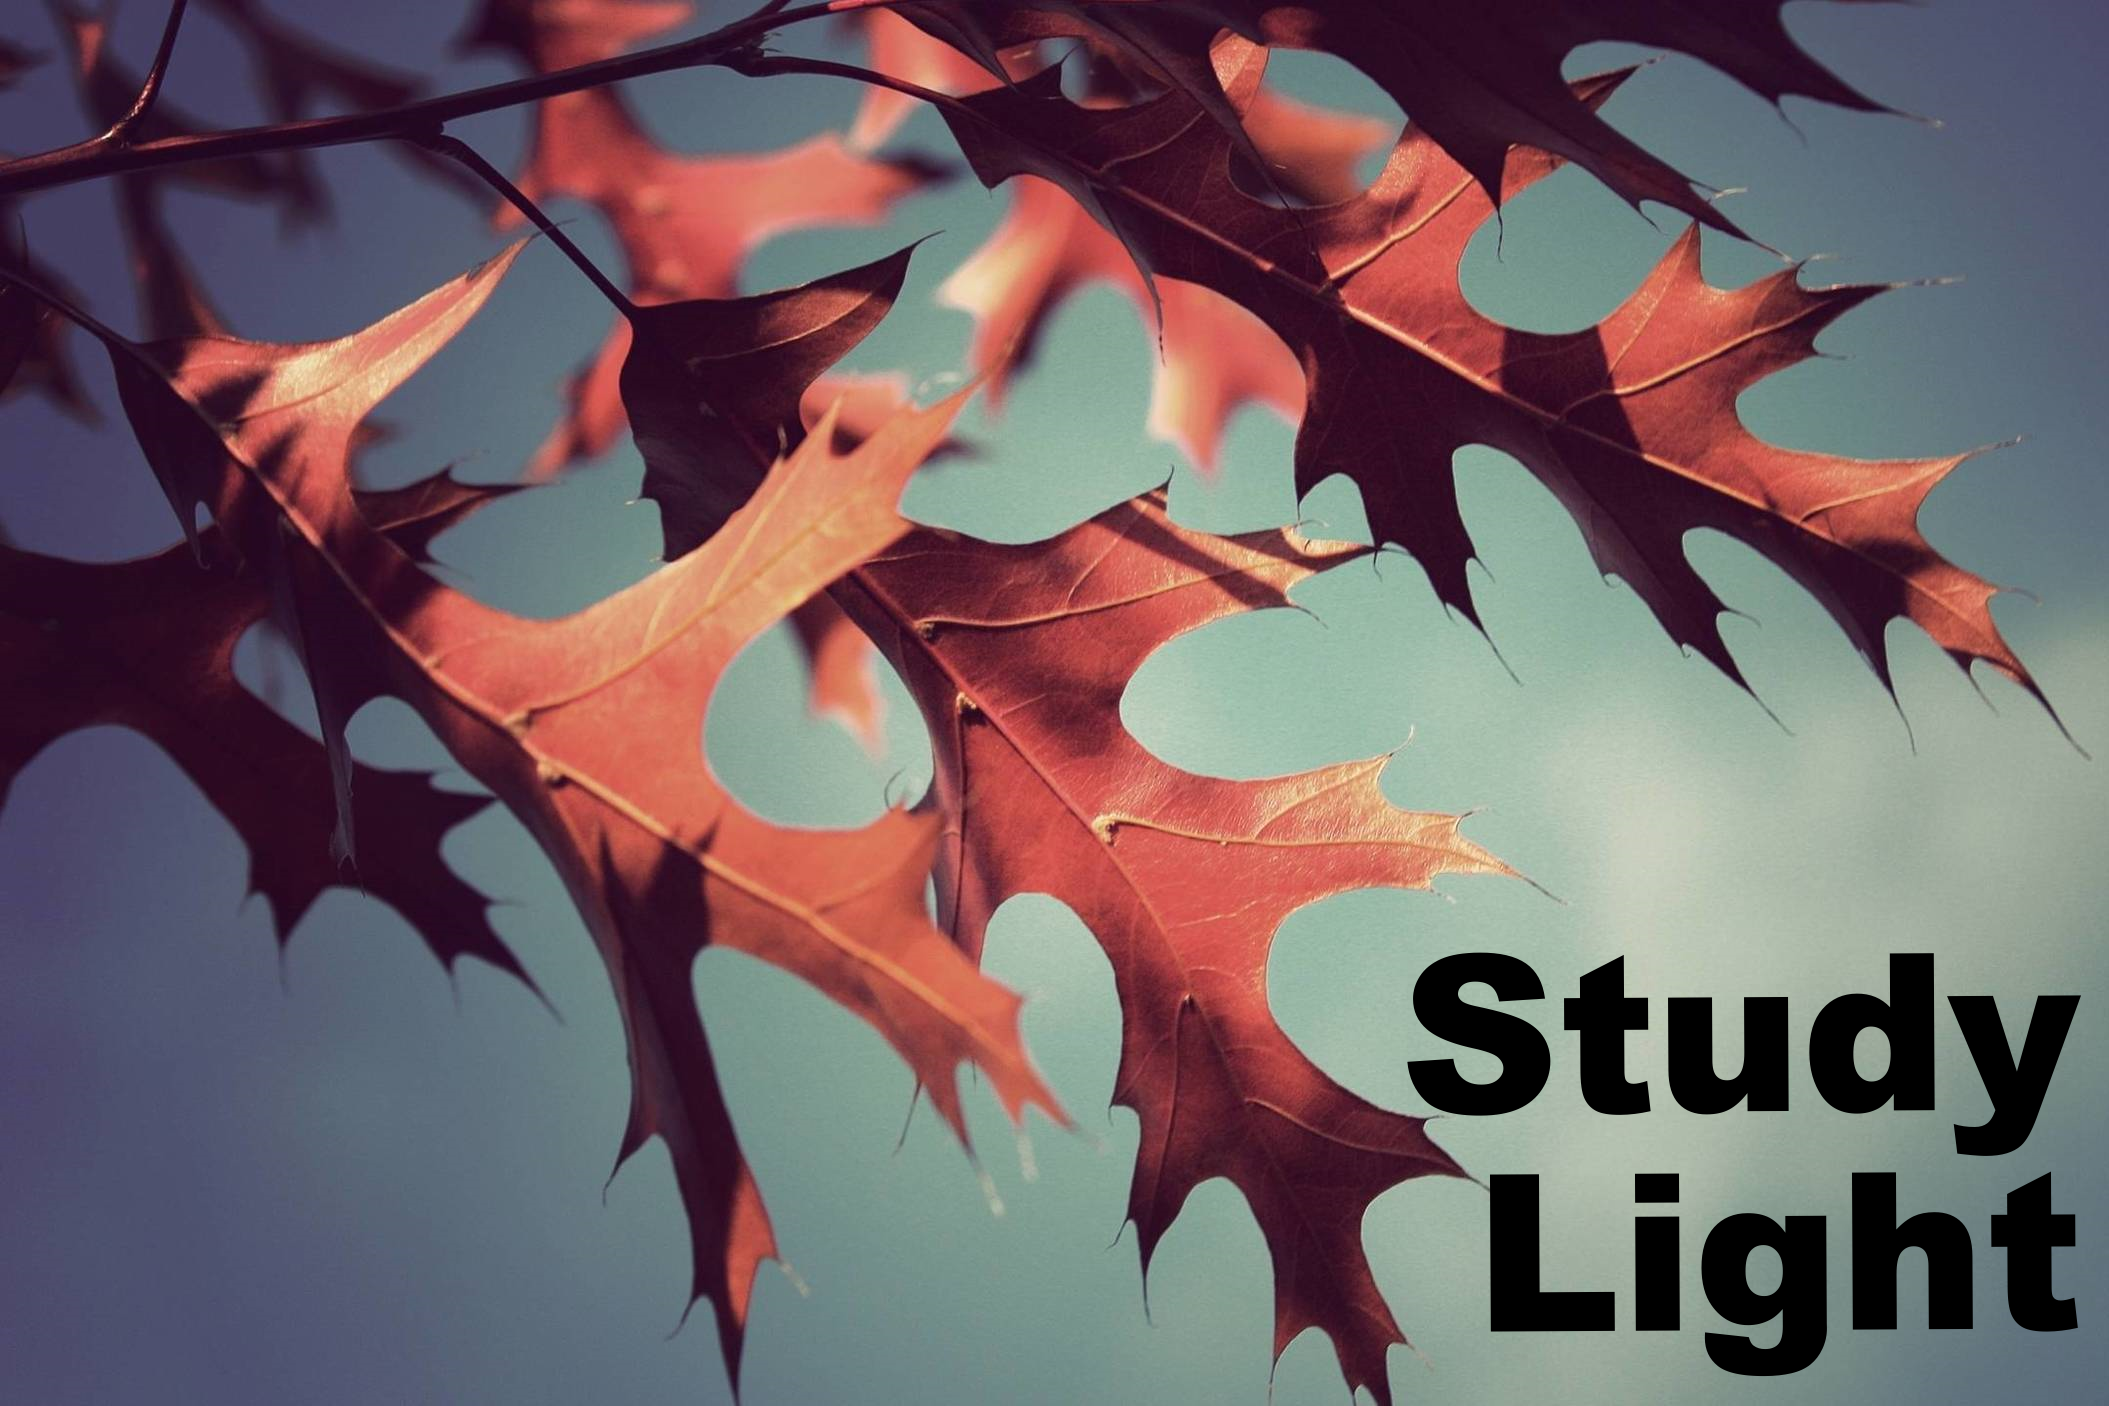 StudyLight.org is an excellent collection of online Bible study resources.